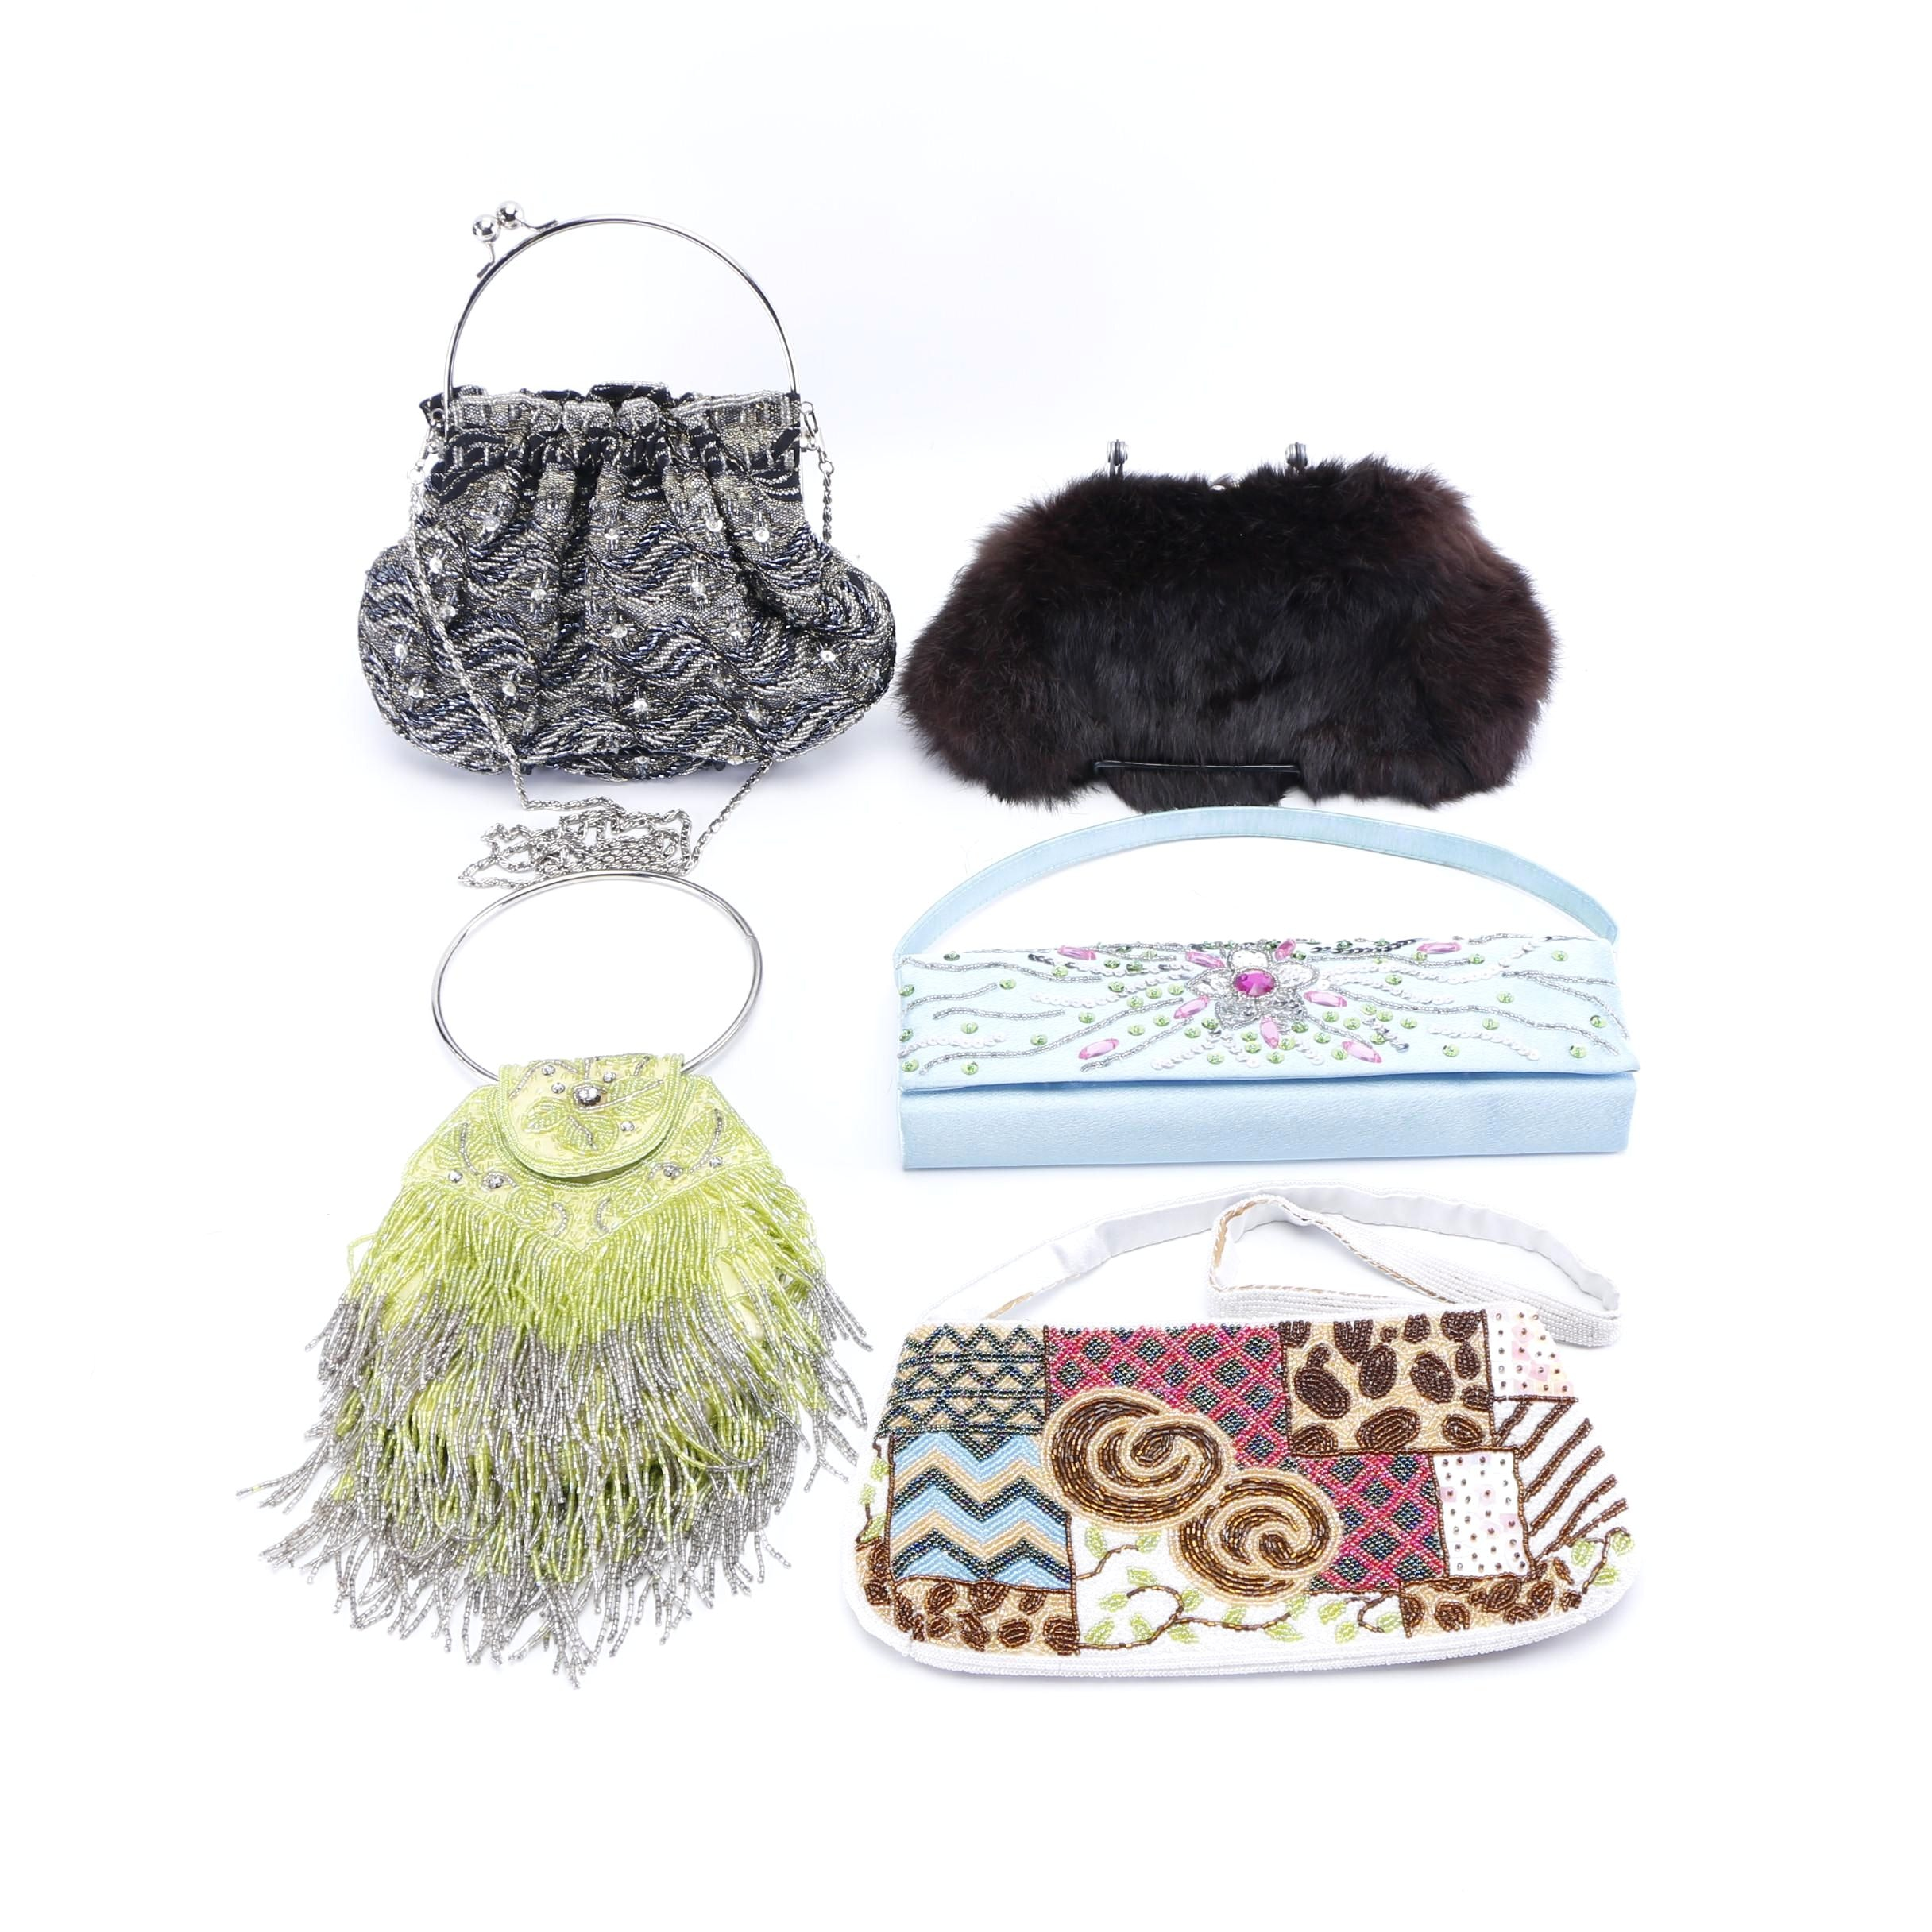 Beaded Evening Bags and Vintage Rabbit Fur Clutch